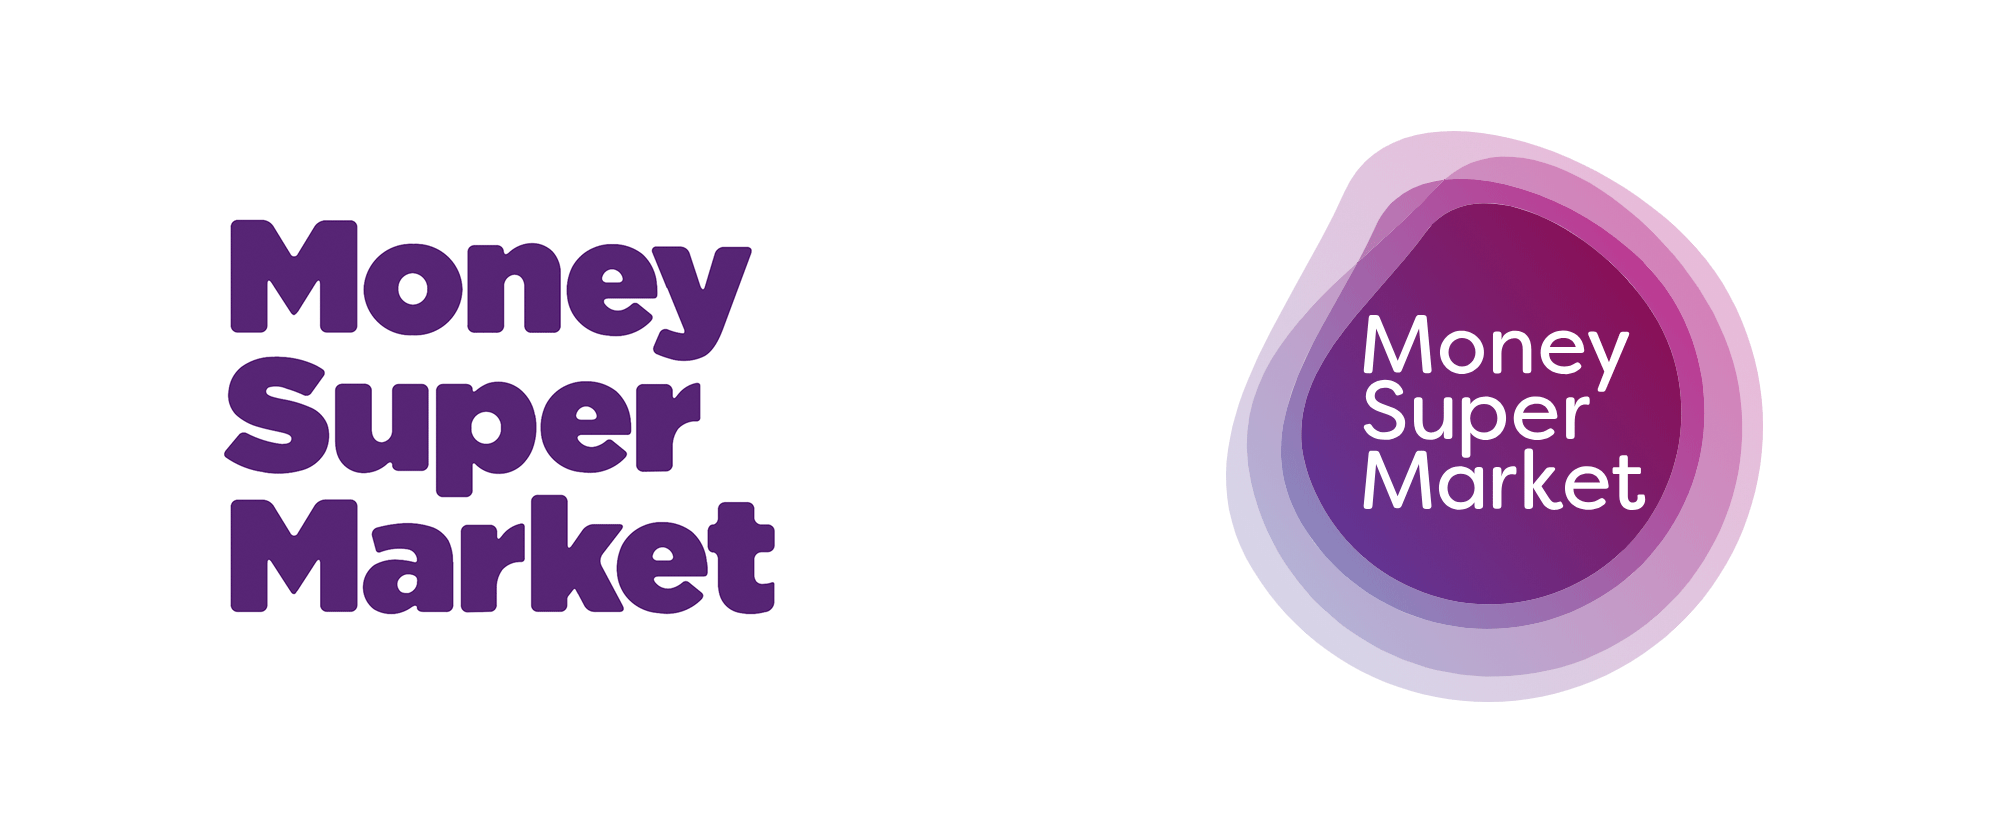 New Logo for Moneysupermarket by Engine